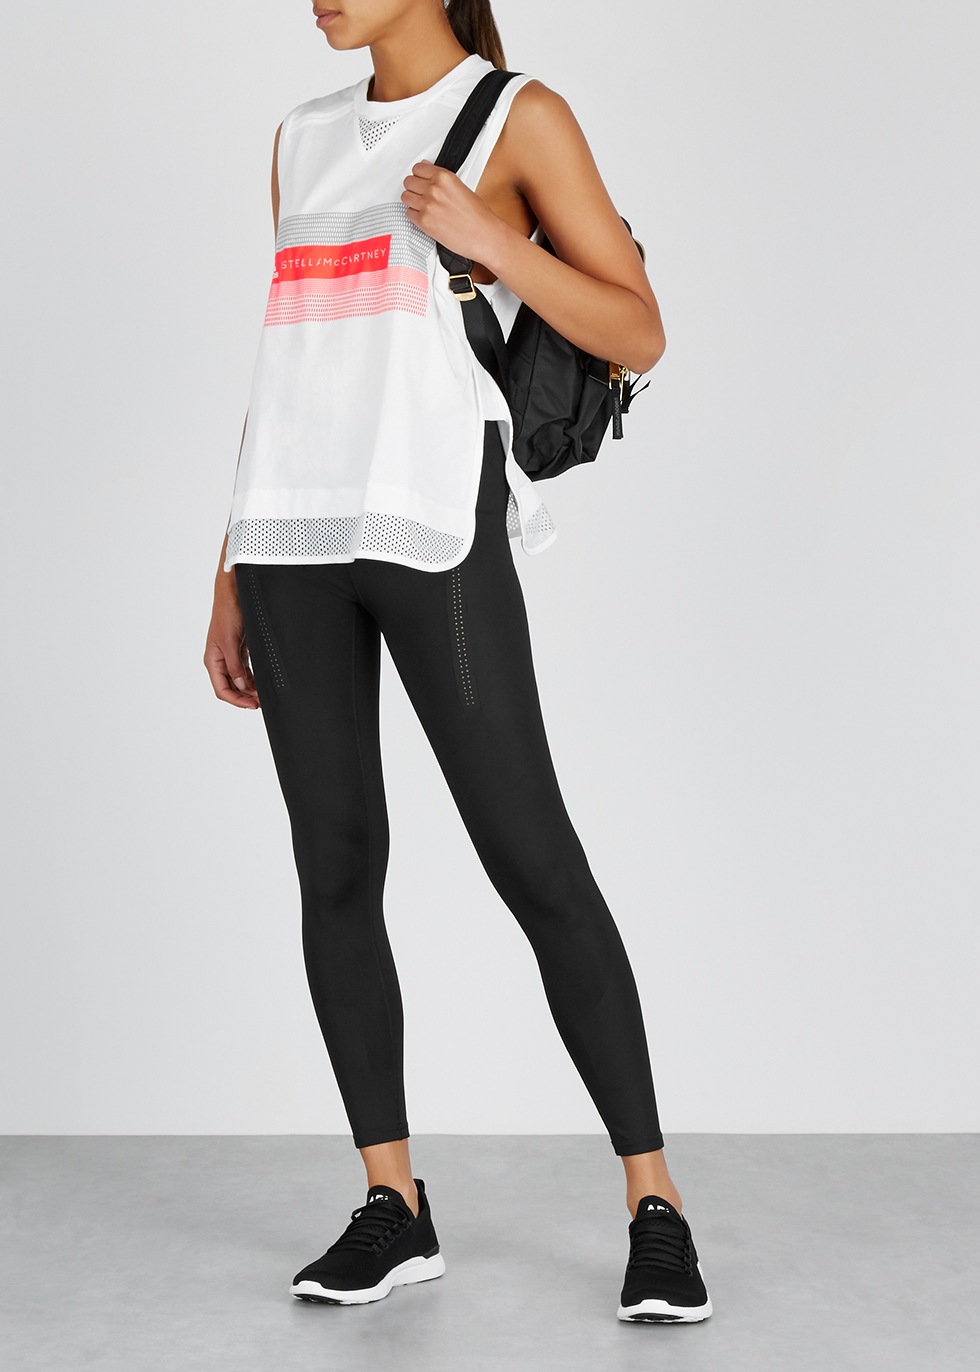 White printed cotton-blend top - adidas X Stella McCartney